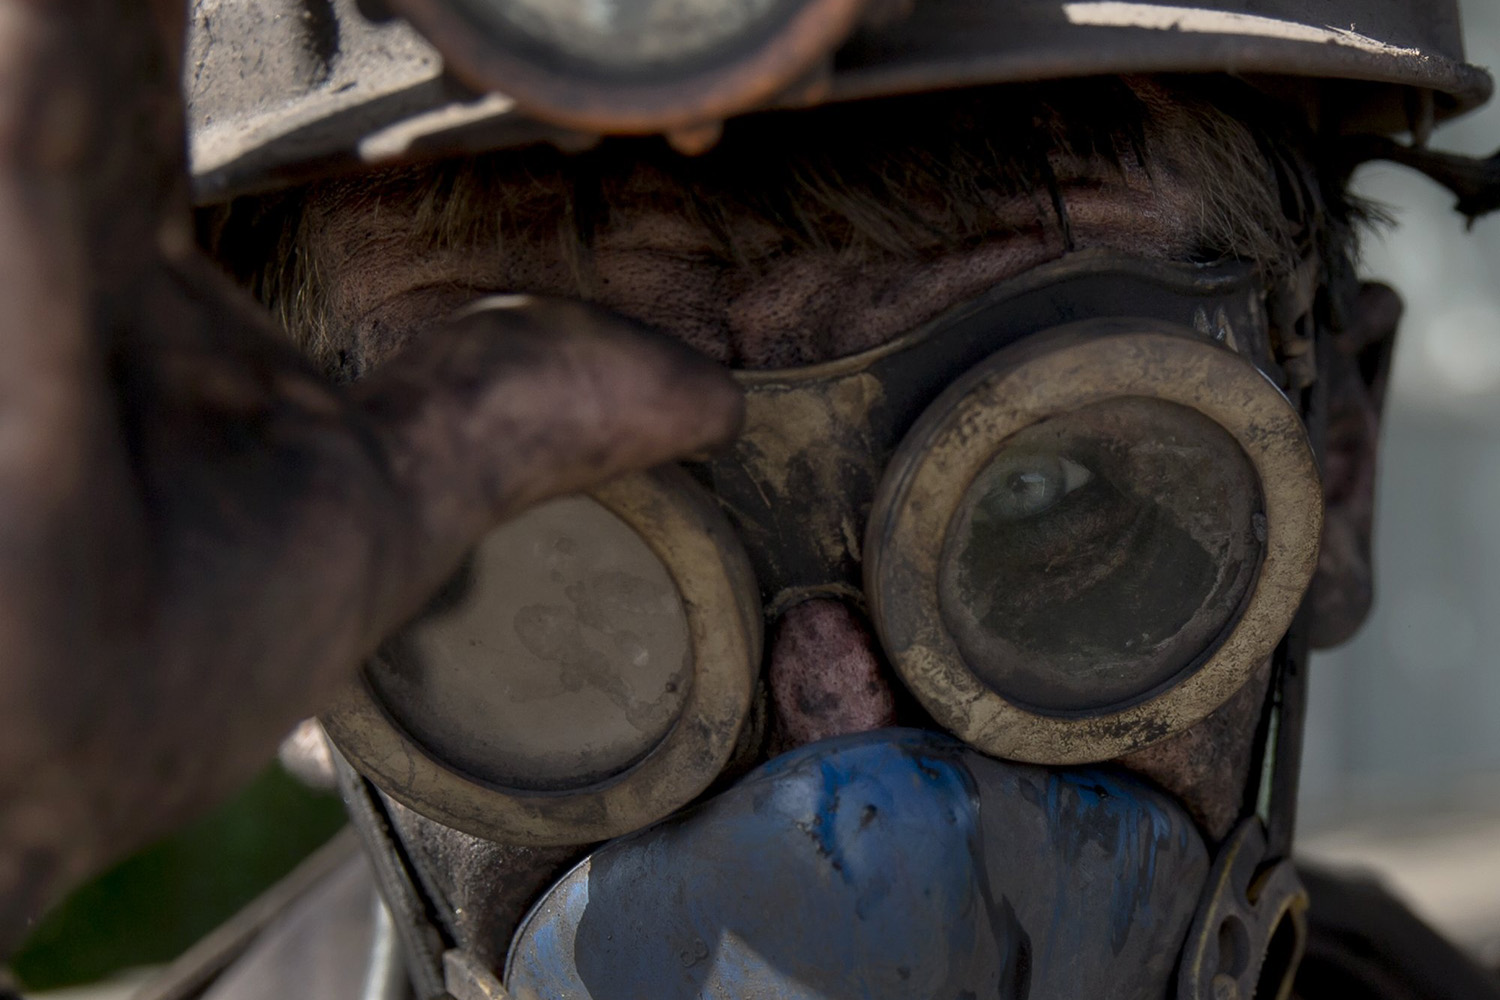 May 20, 2014. A Ukrainian coal miner wears his goggles after finishing his shift at a coal mine outside Donetsk, Ukraine.